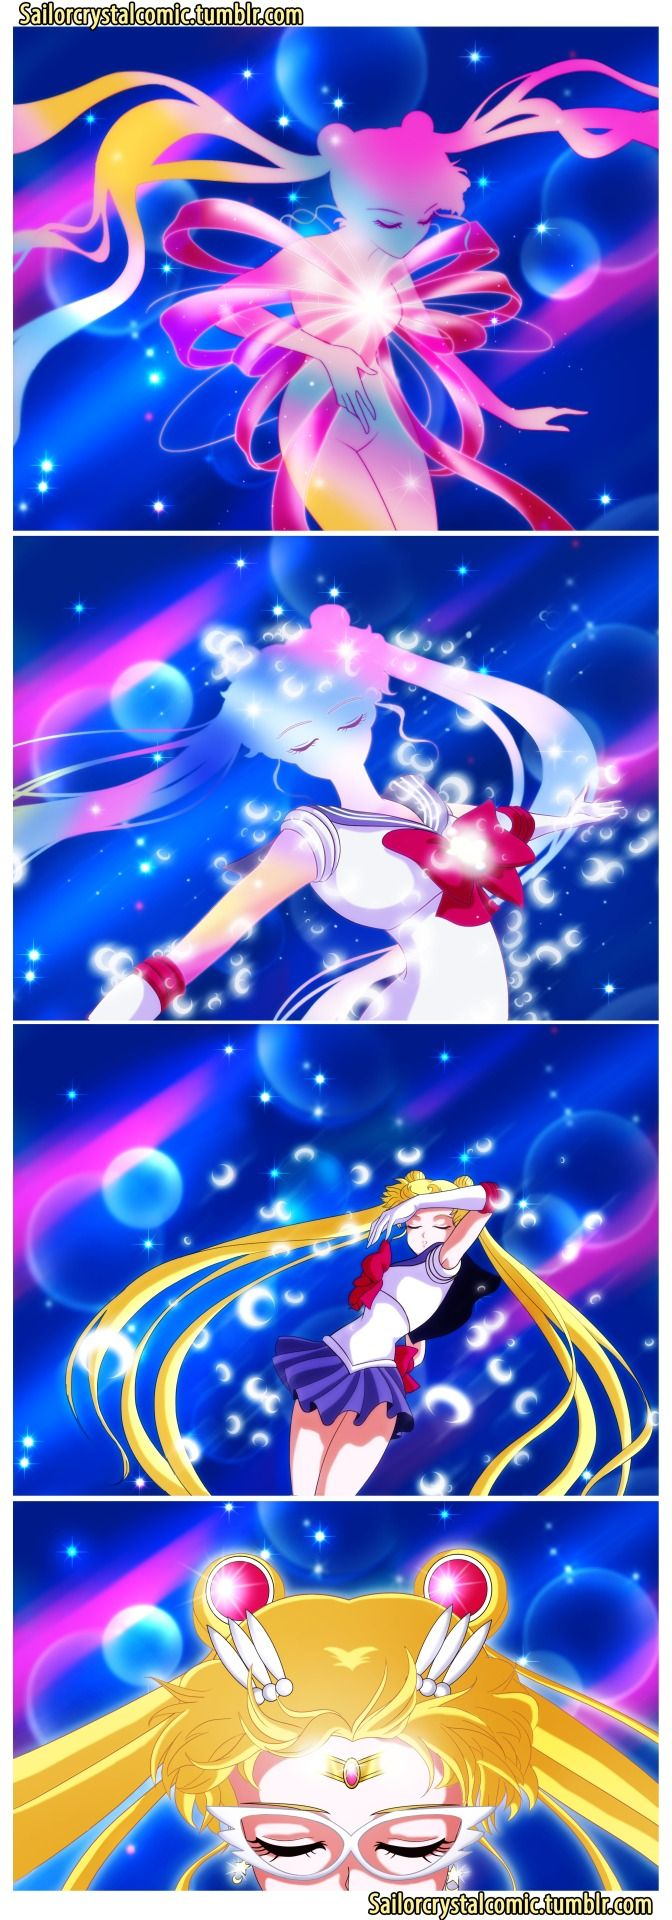 Sailor Moon Crystal comic: Usagi's first time transformating (manga story-wise).